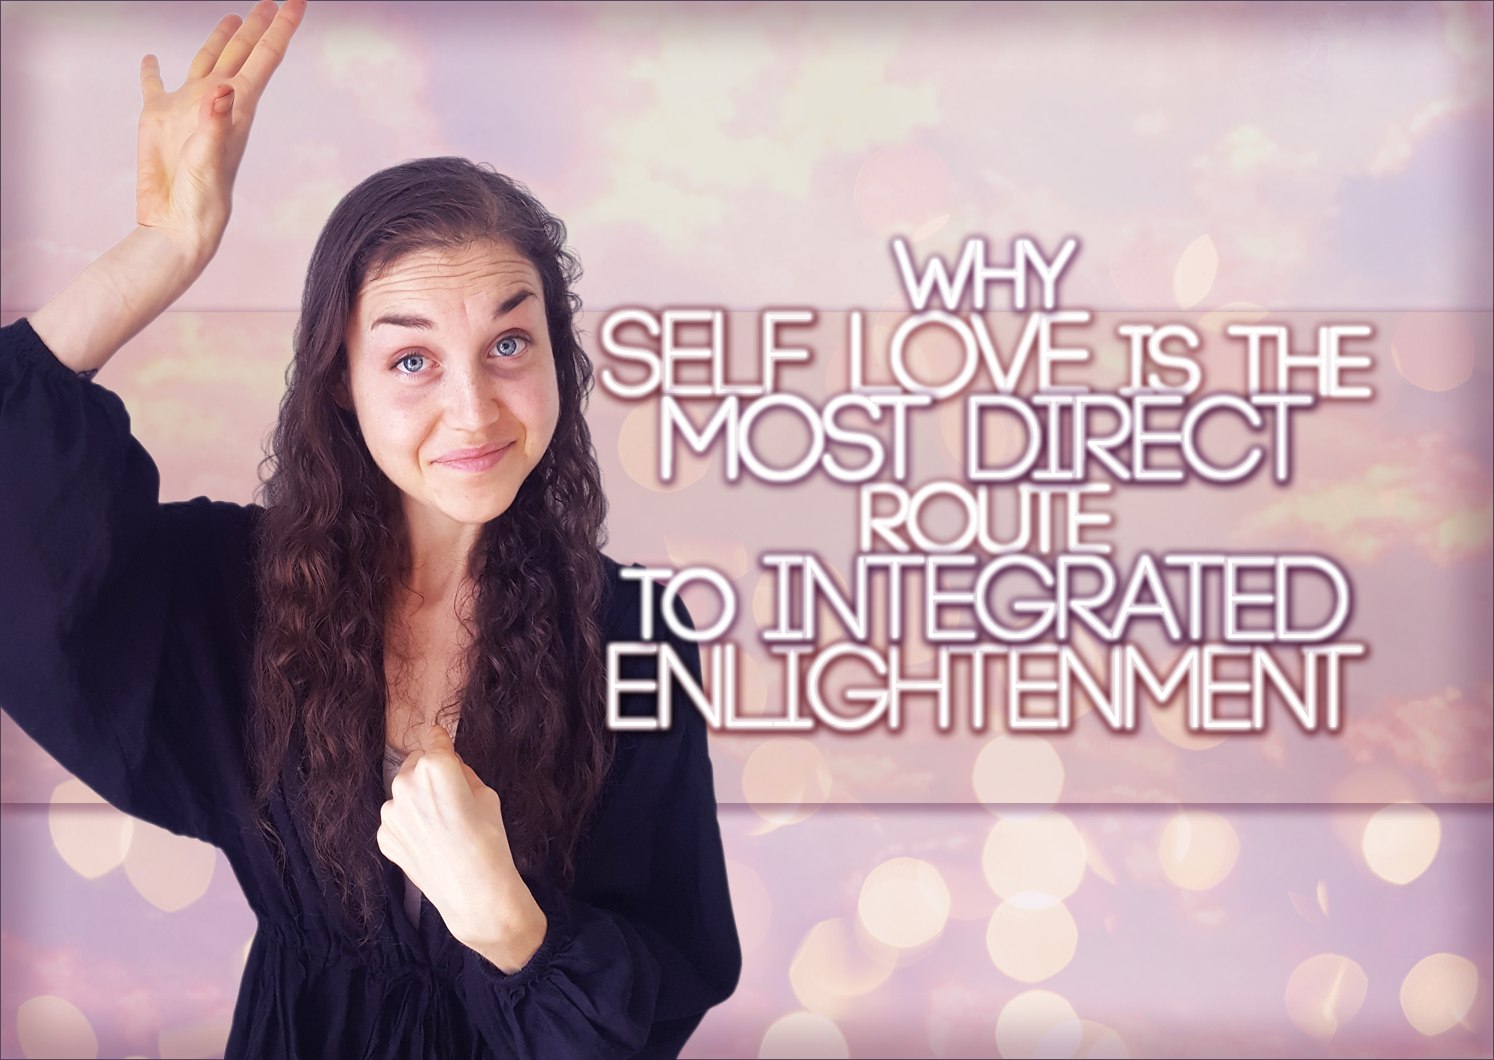 Why Self Love Is The Most DIRECT Route To INTEGRATED Enlightenment